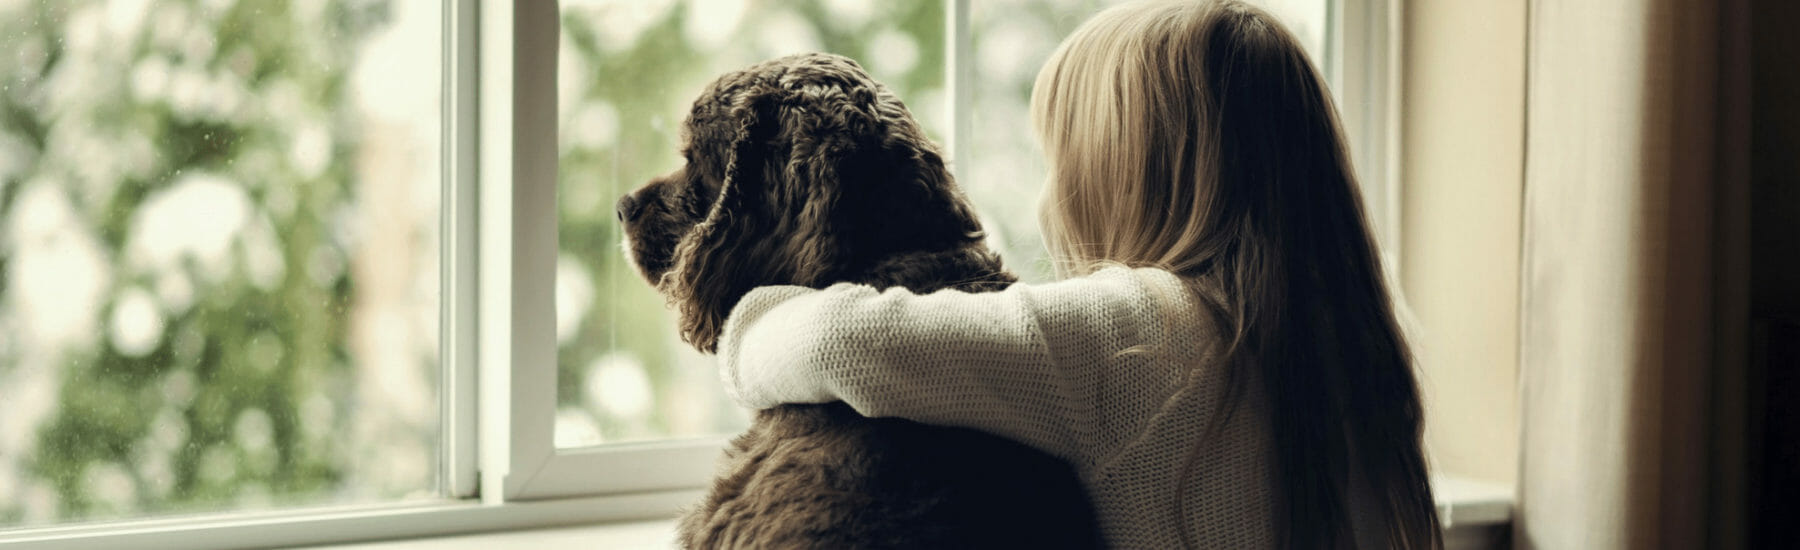 Owner with arm around large black dog looking out of the window together